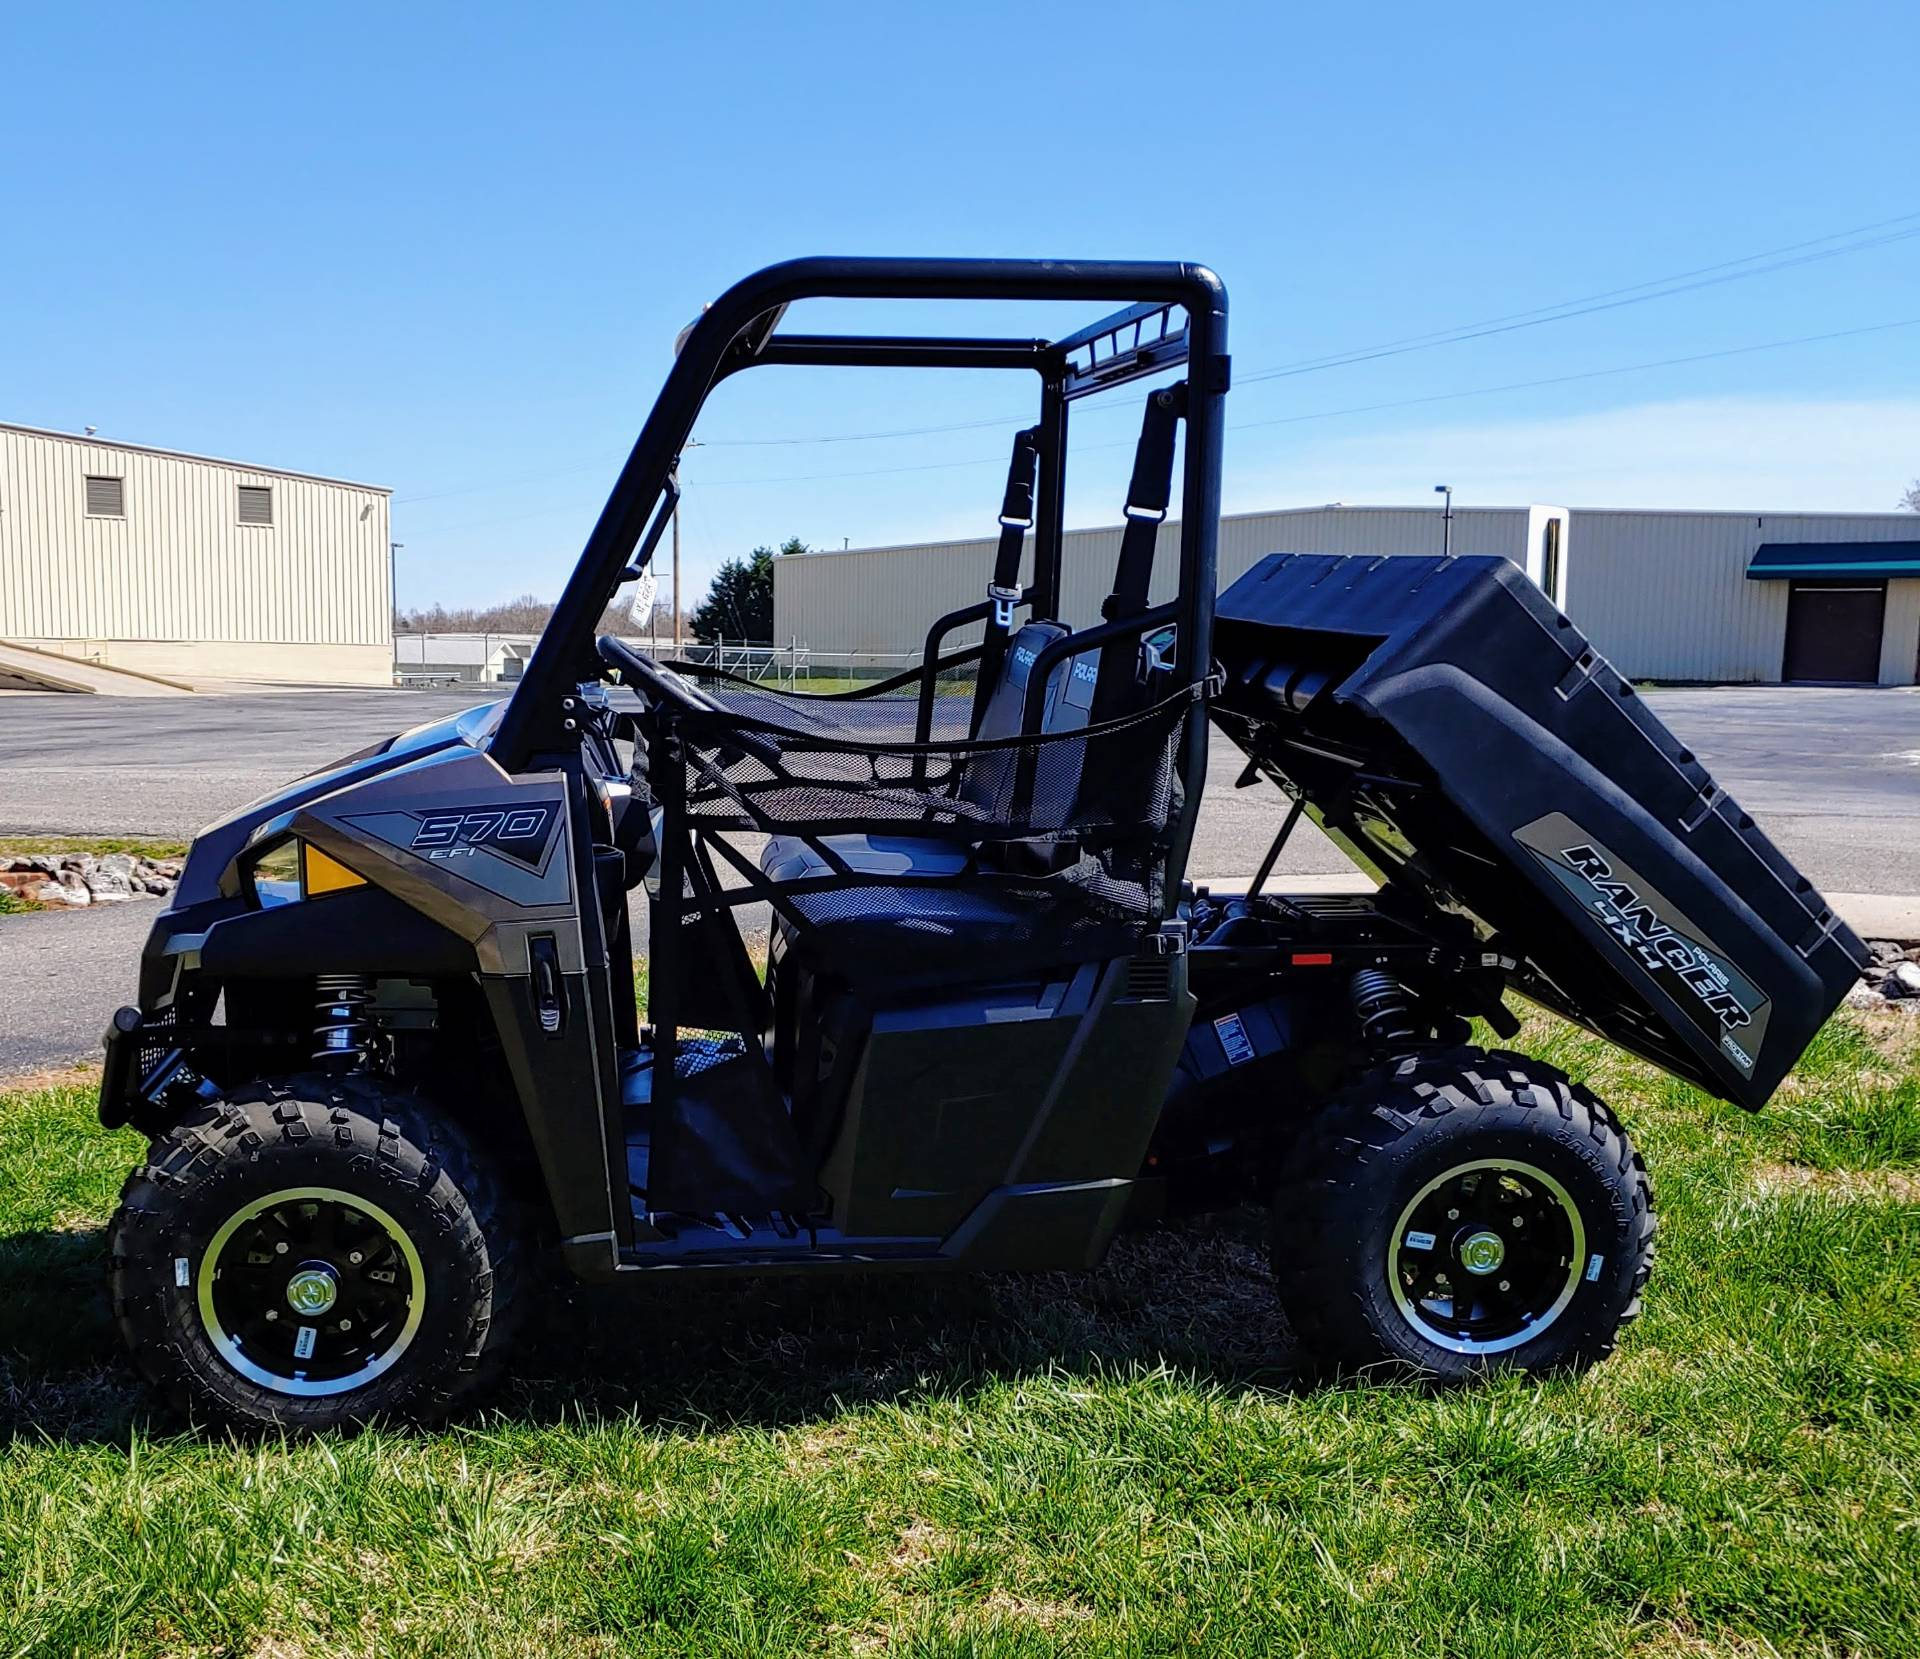 2019 Polaris Ranger 570 EPS in Statesville, North Carolina - Photo 1